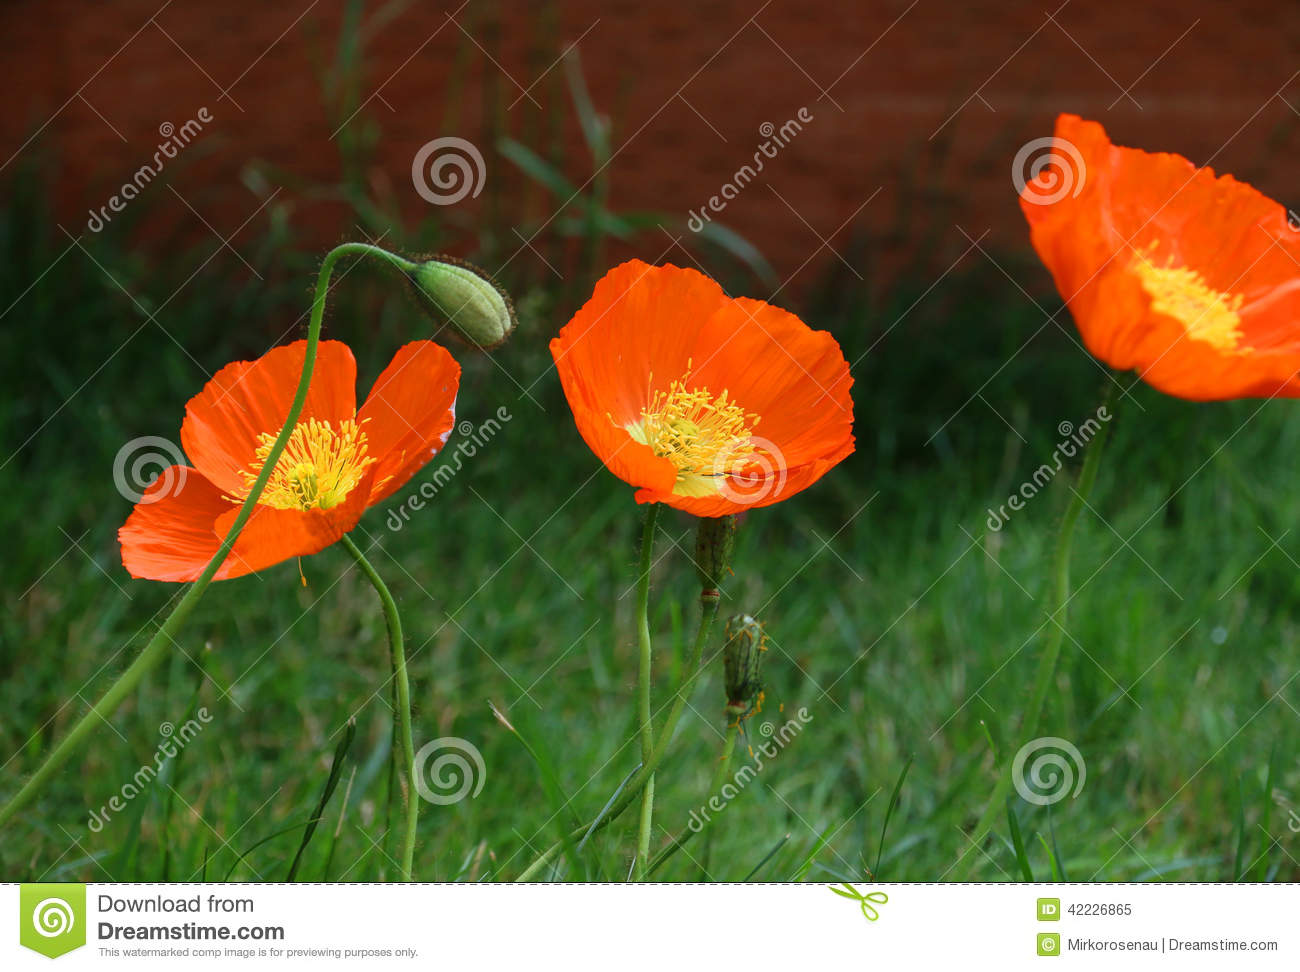 Flower field poppy moon flowers red yellow stock image image of download comp mightylinksfo